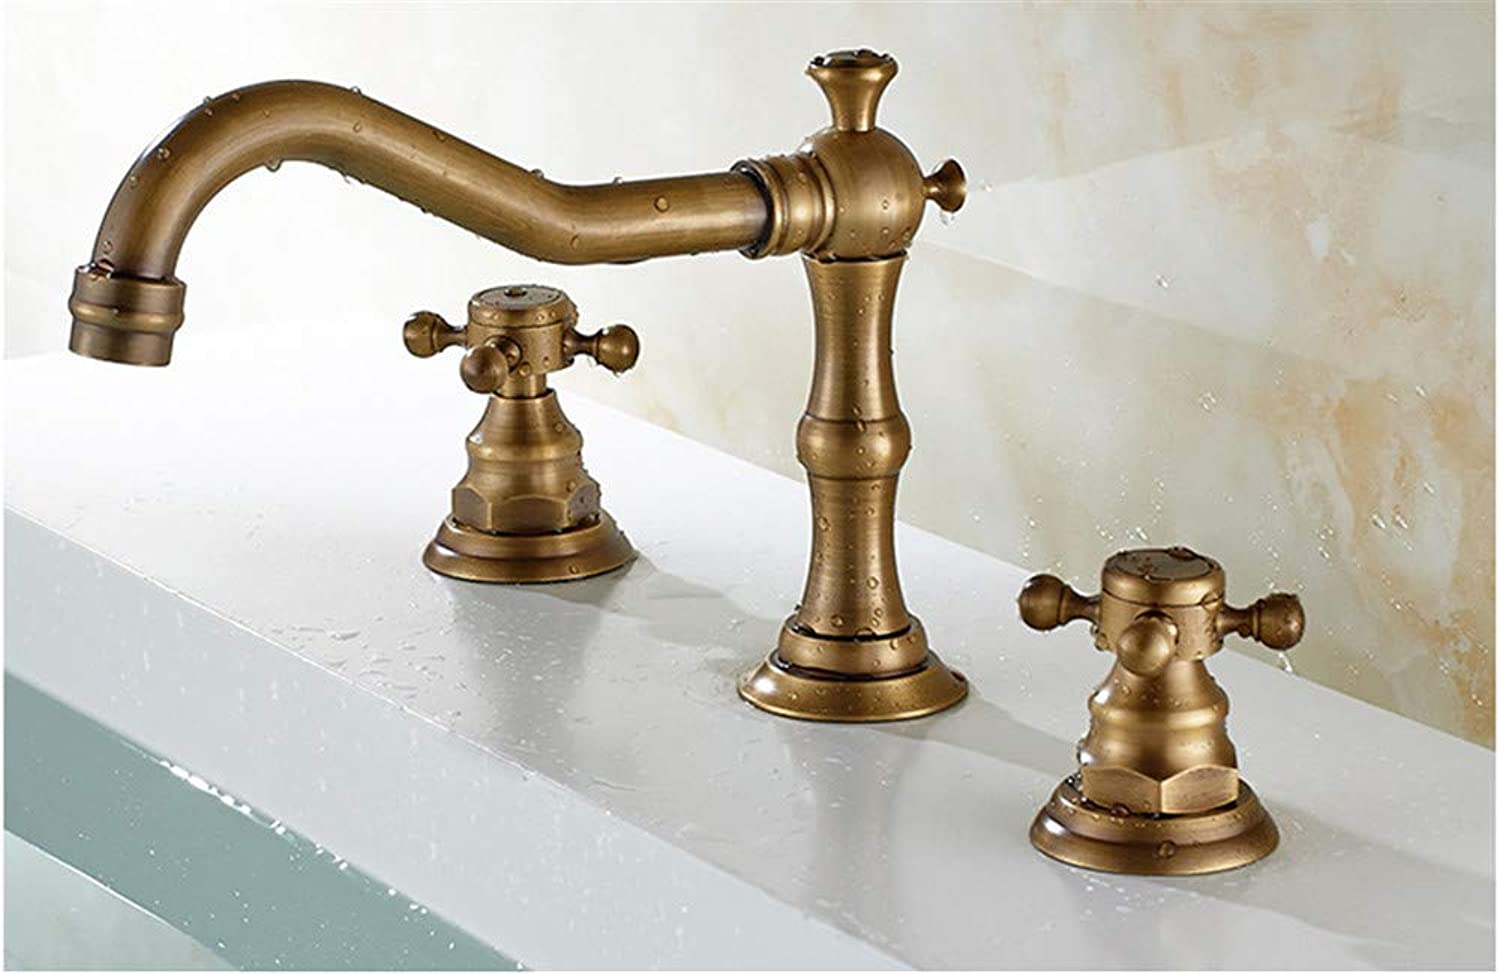 XPYFaucet Faucet Tap Taps ?Copper European three-hole double handle basin antique hot and cold water spiral basin